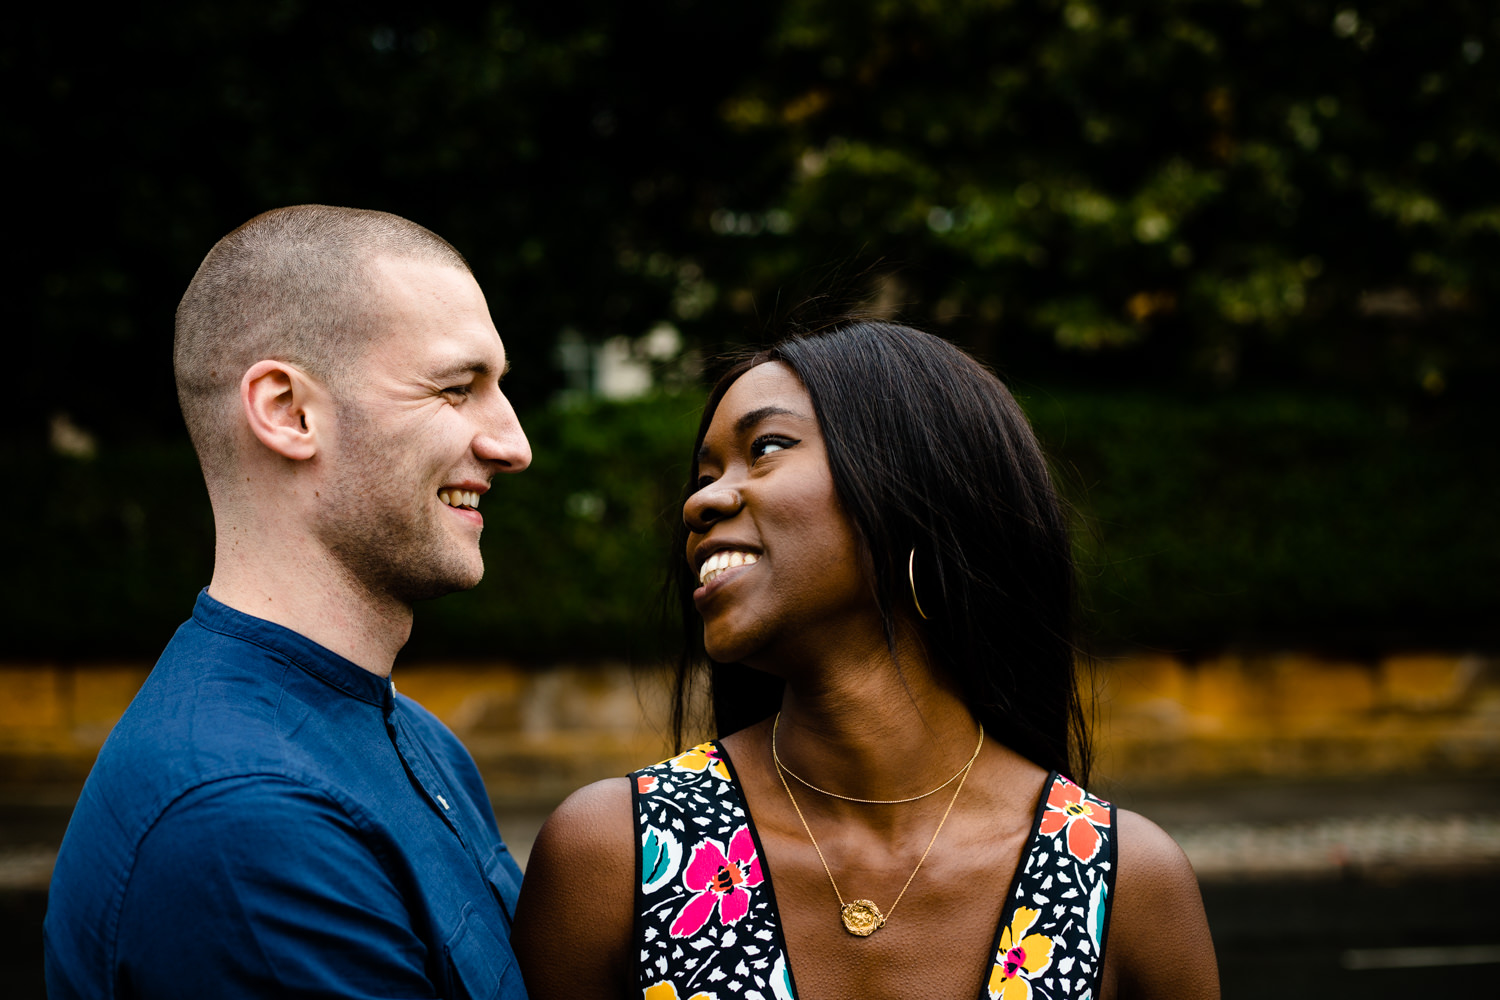 colourful-creative-pre-wedding-shoot-georgian-quarter-liverpool-30.jpg